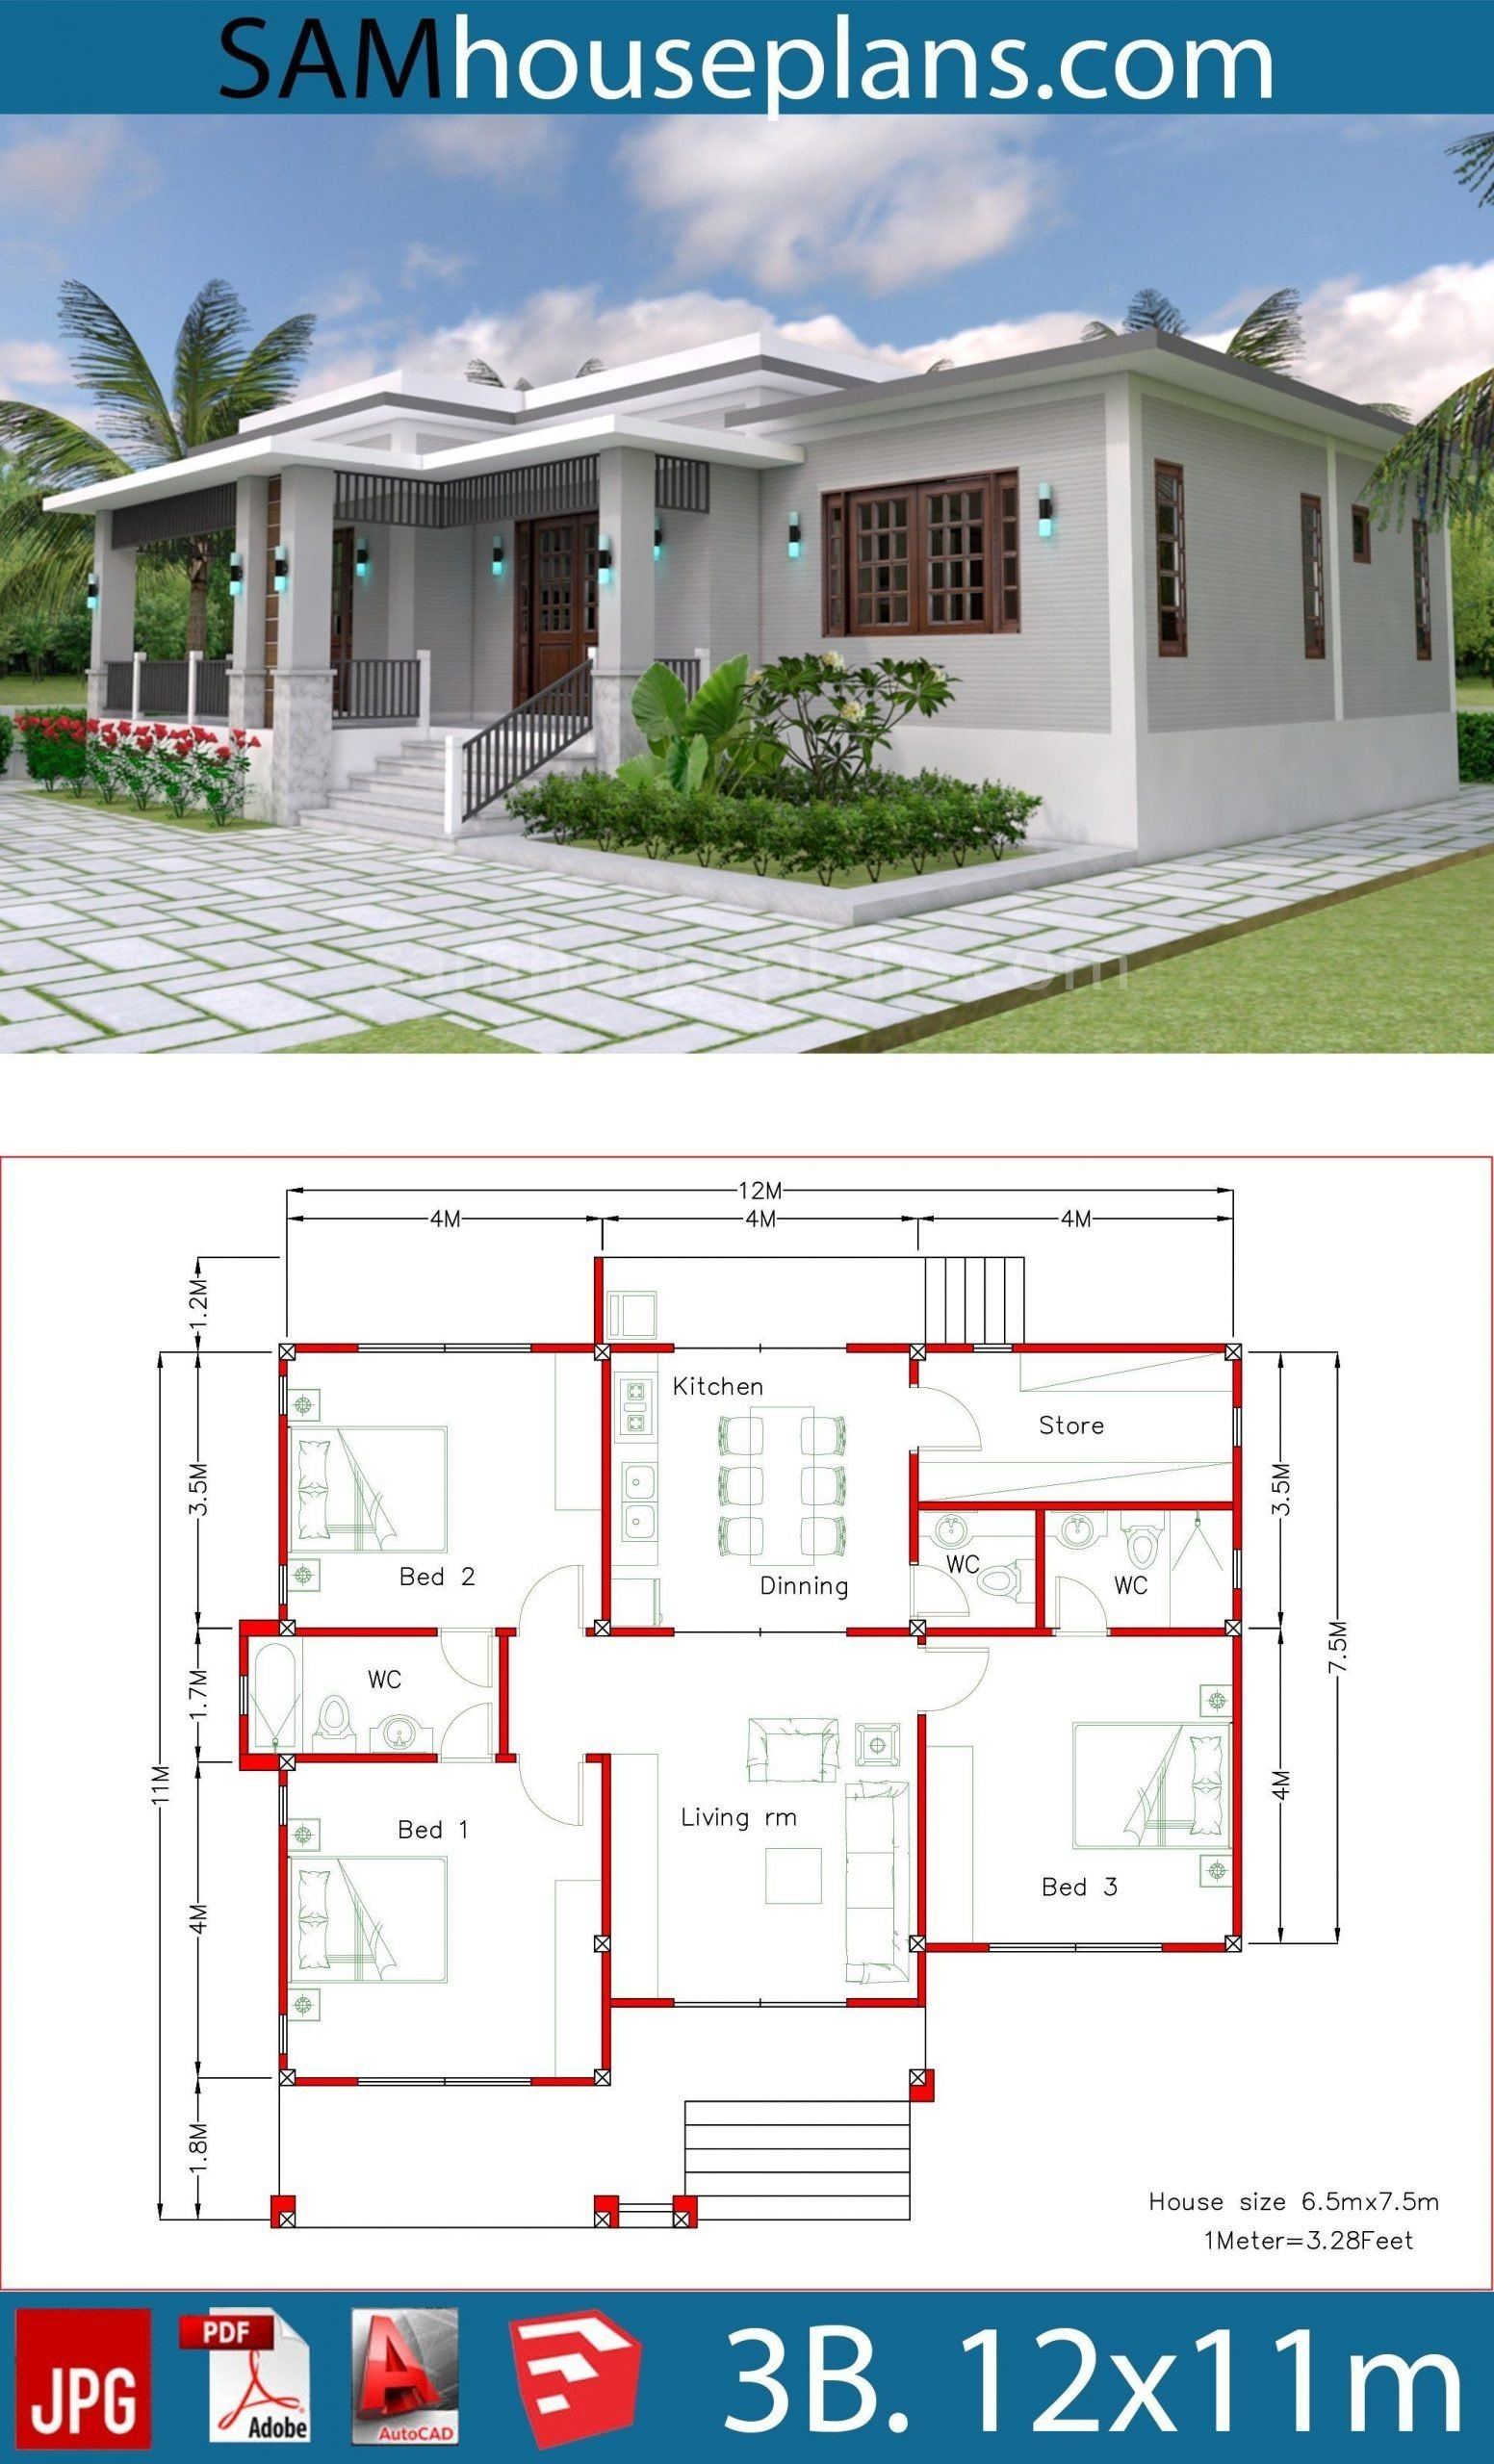 af2d b9bdf9d6a8fd549a6e1b558 on Modern House Designs Pictures Gallery id=1005759